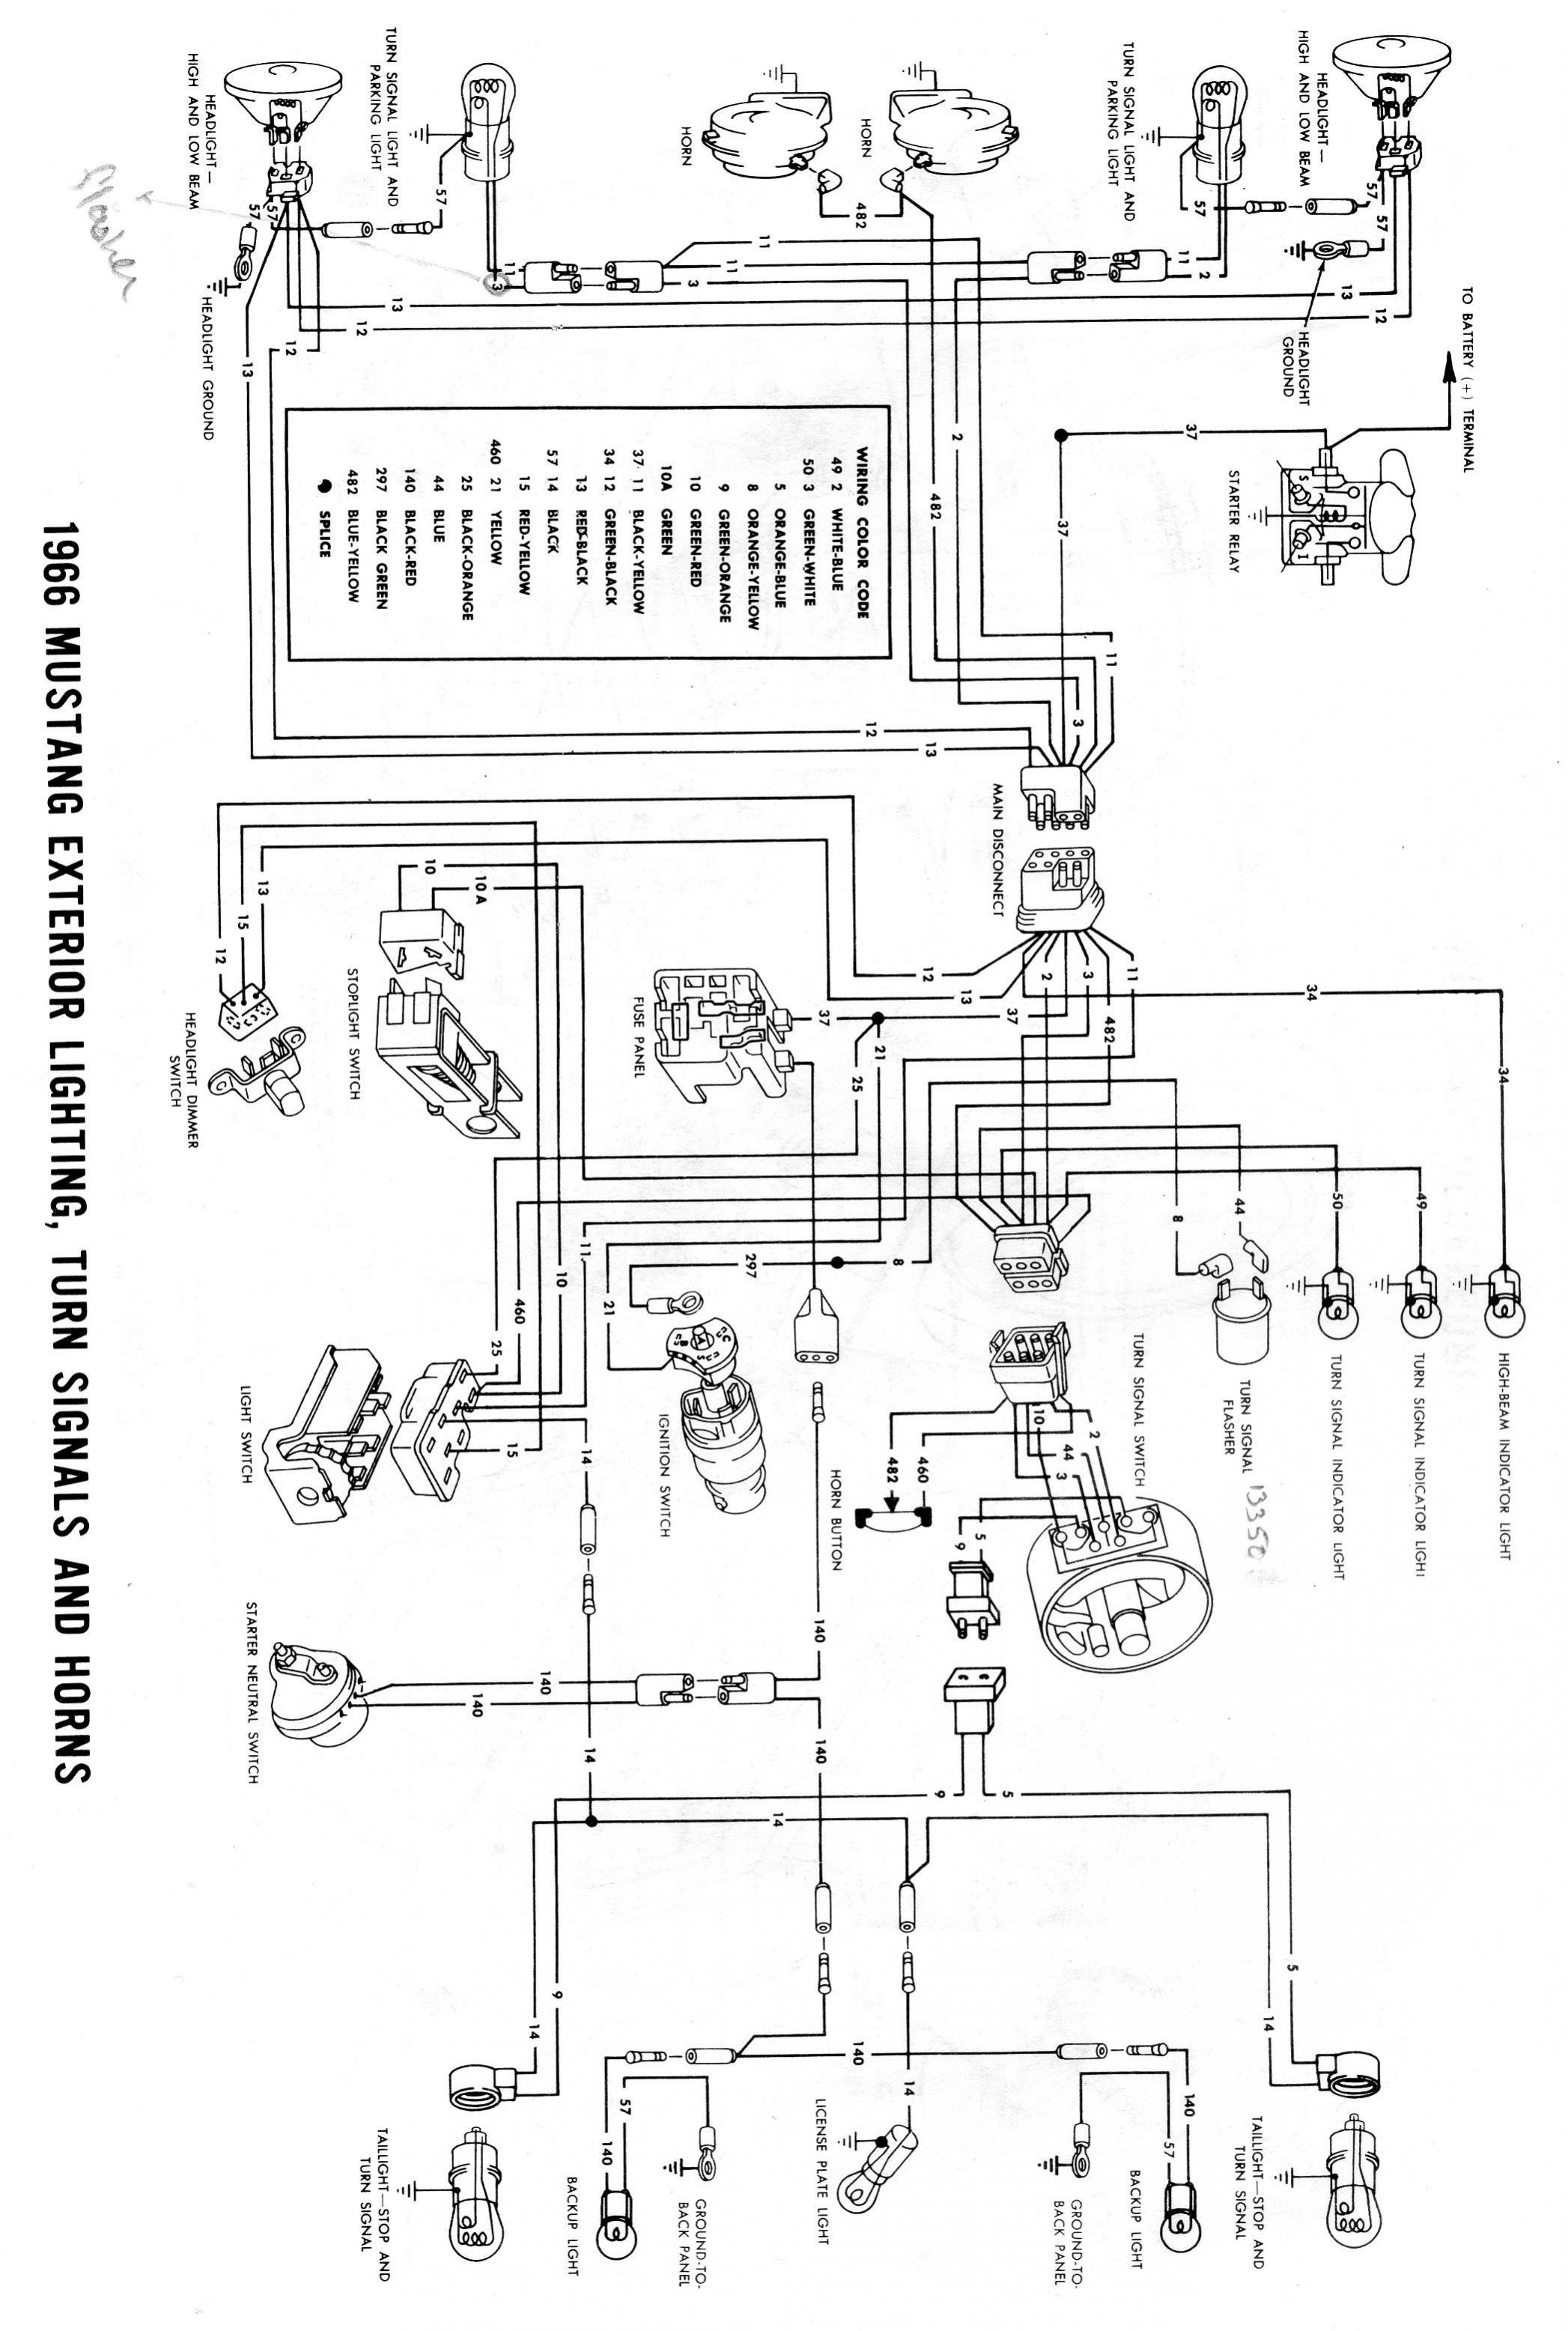 1971 Mustang Dash Wiring Diagram Reinvent Your 1970 Pontiac Gto Harness Ac Data Schema U2022 Rh 45 77 100 8 71 Ford Diagrams